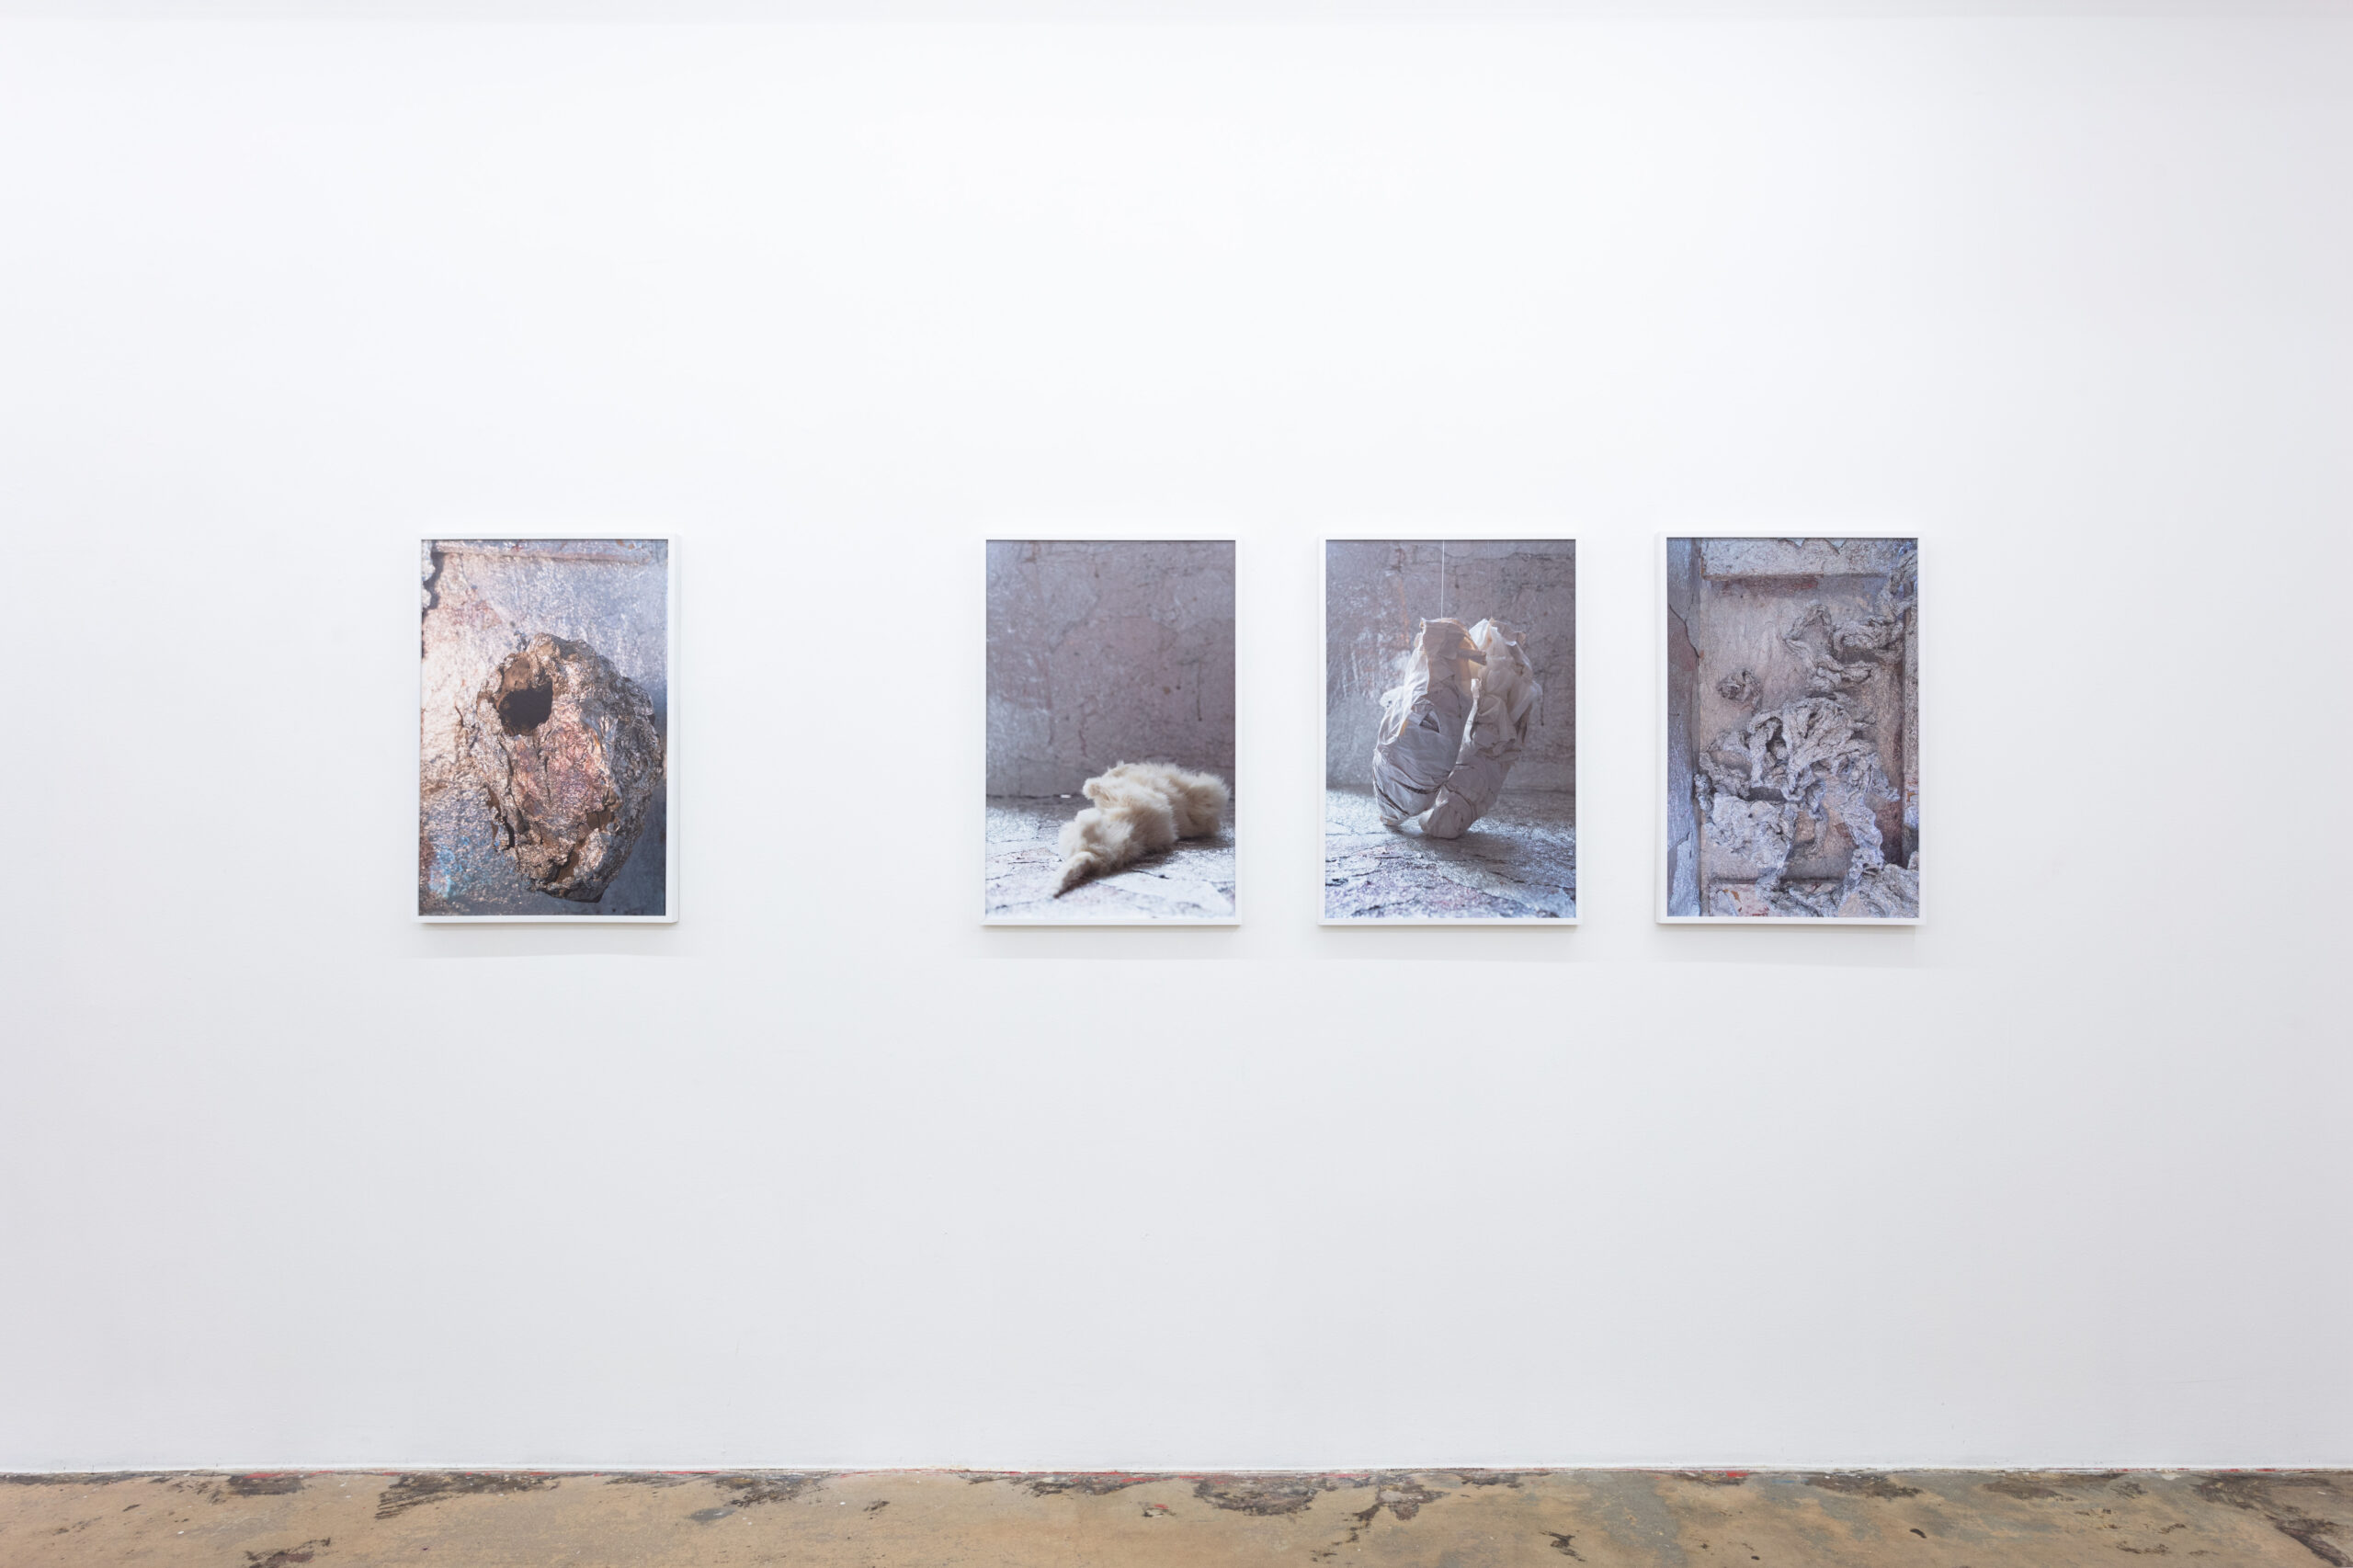 Anna Betbeze, Forms Like Dreams installation view